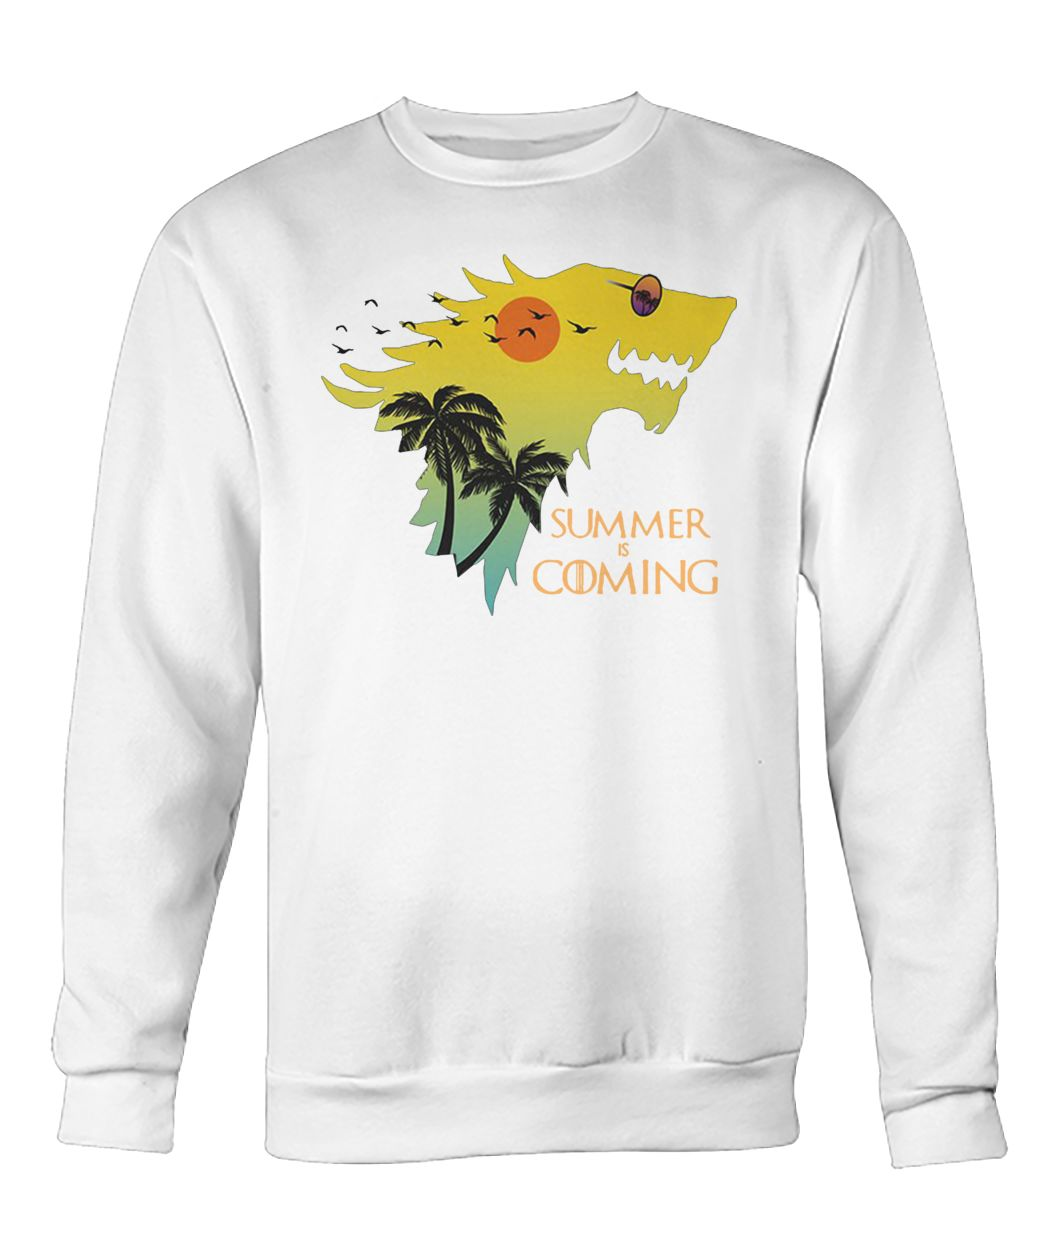 House stark summer is coming game of thrones crew neck sweatshirt